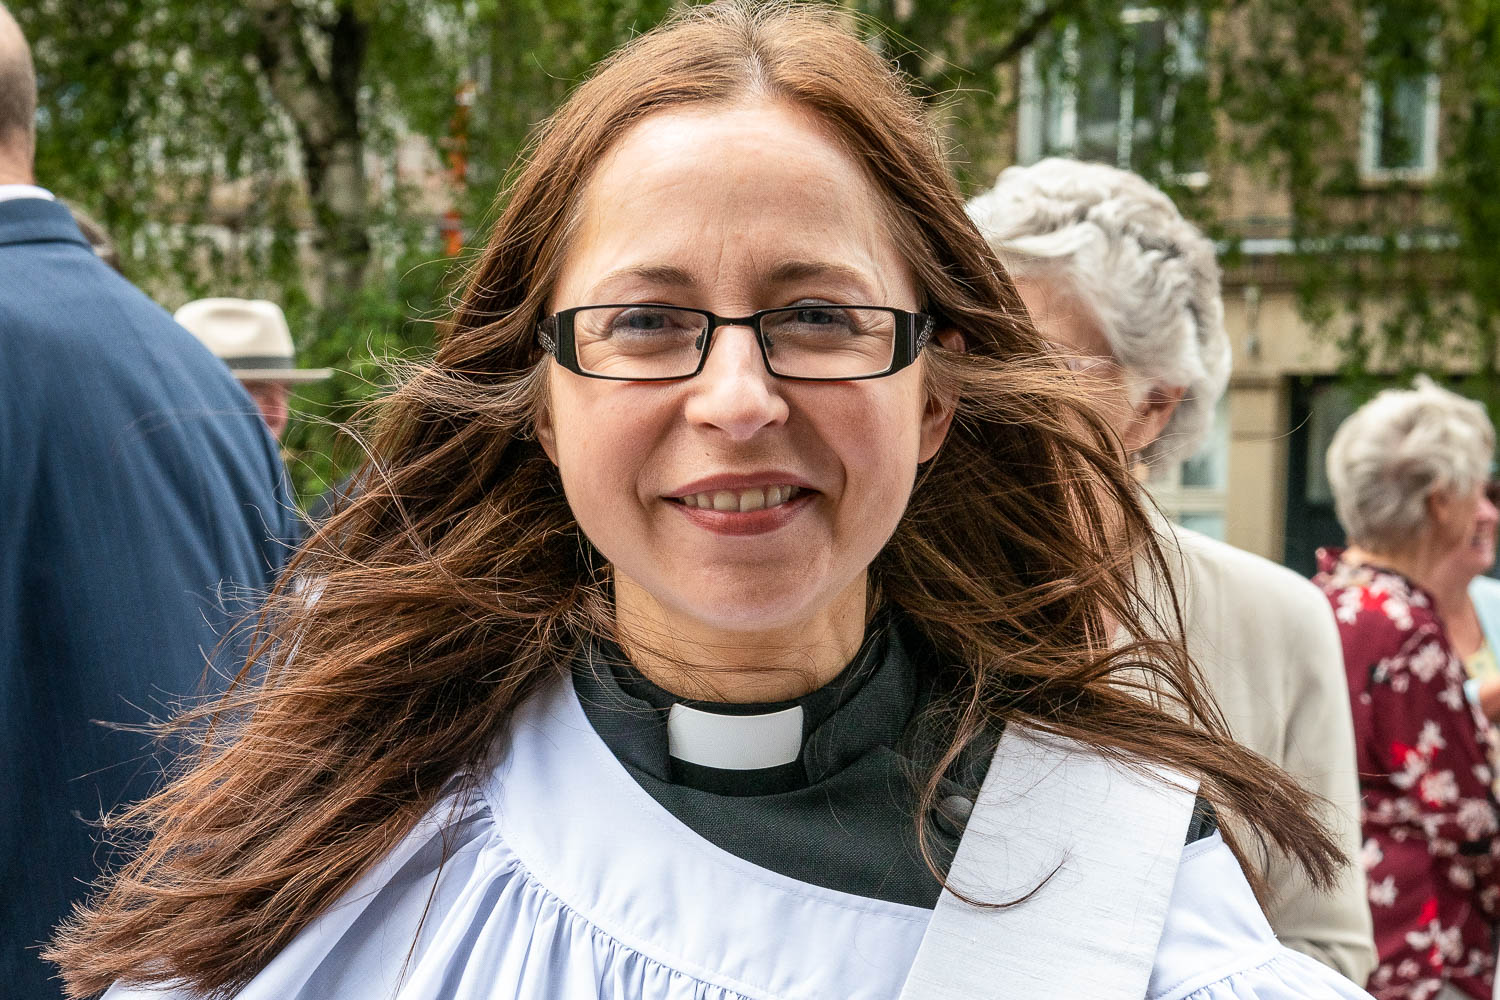 sally anne beecham Ordination 20190630 211 1500 72